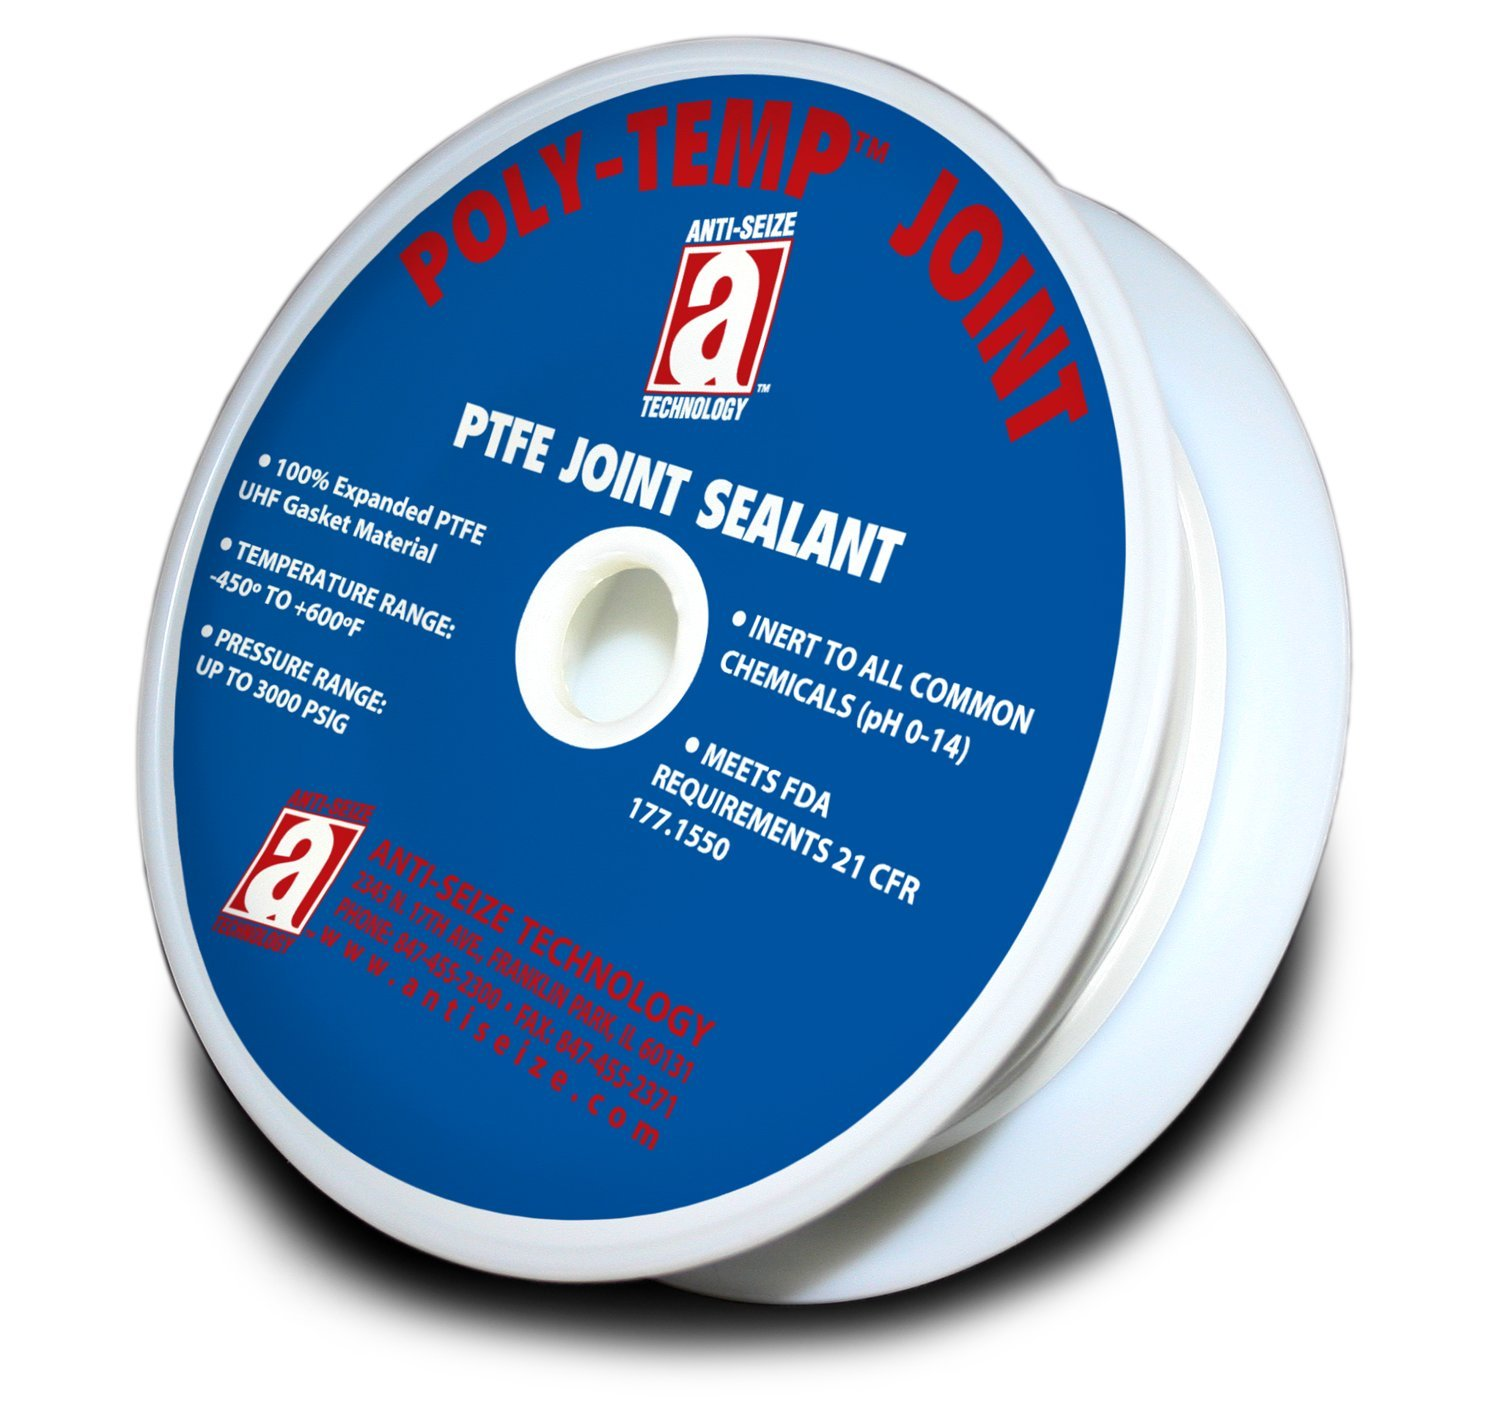 POLY TEMP 28114 White Joint Sealant 100% PTFE Gasket Material Expanded UHF Adhesive Tape 1 2 x 30'